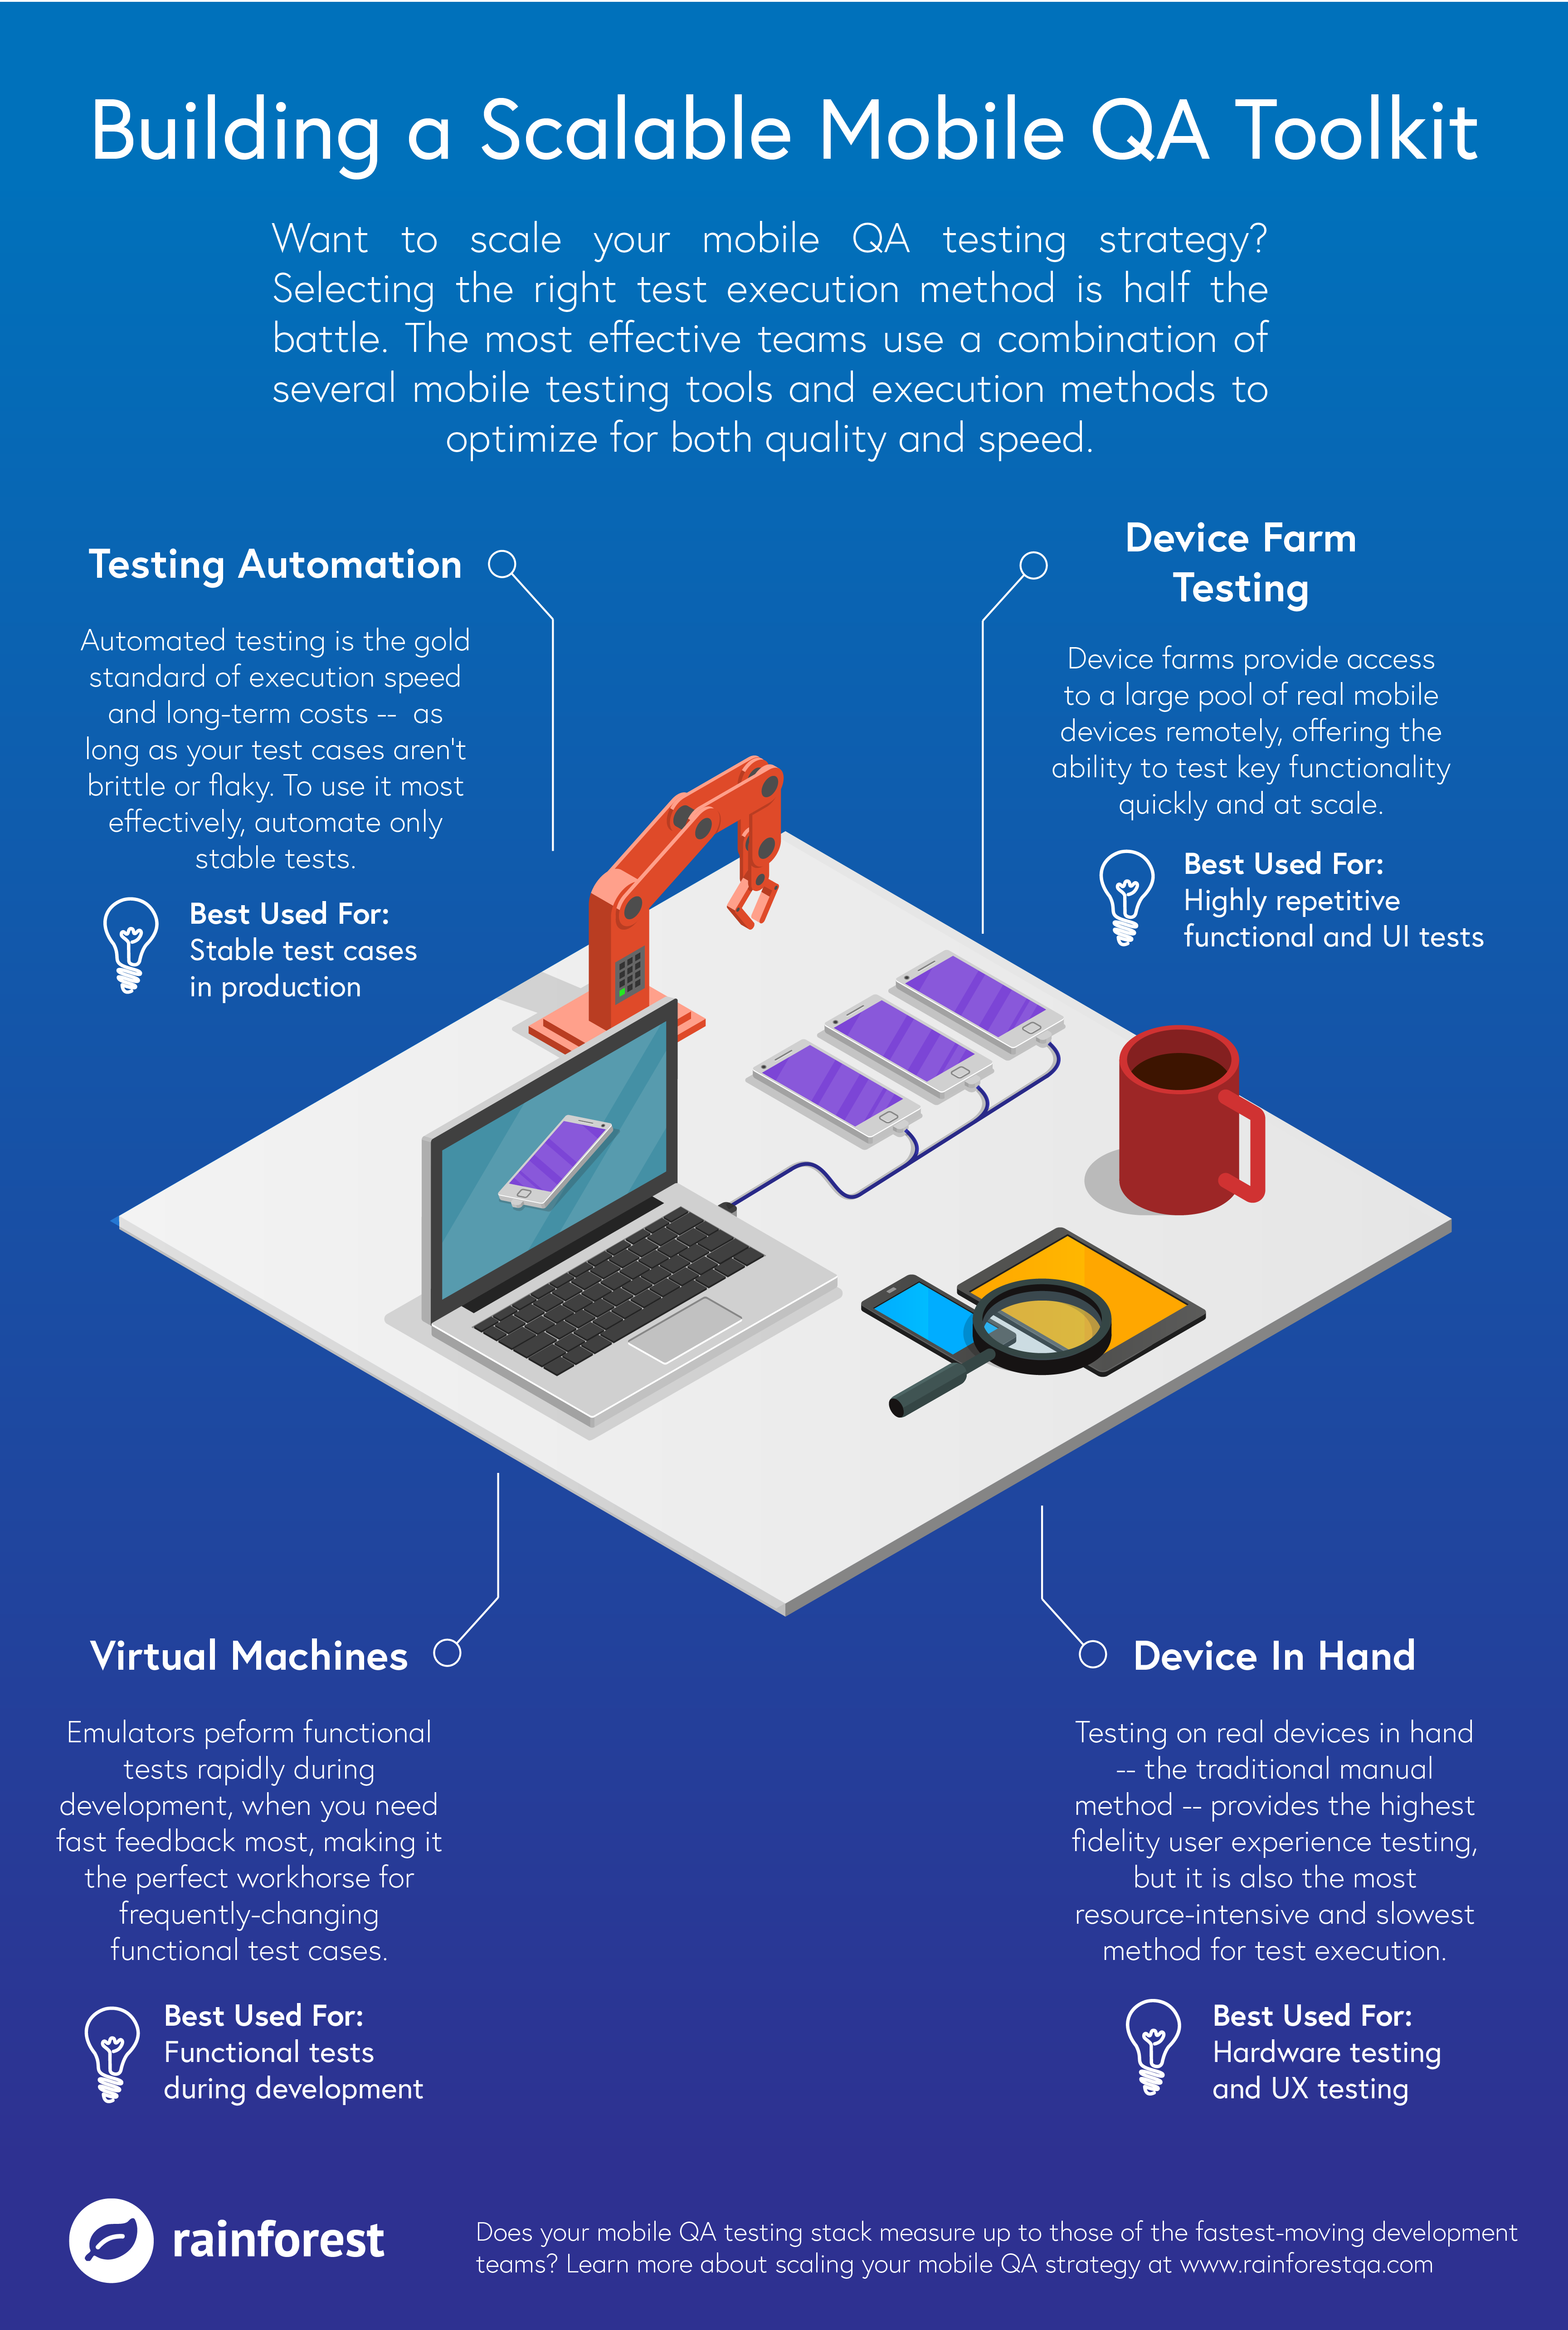 Building a Scalable Mobile QA Toolkit Infographic